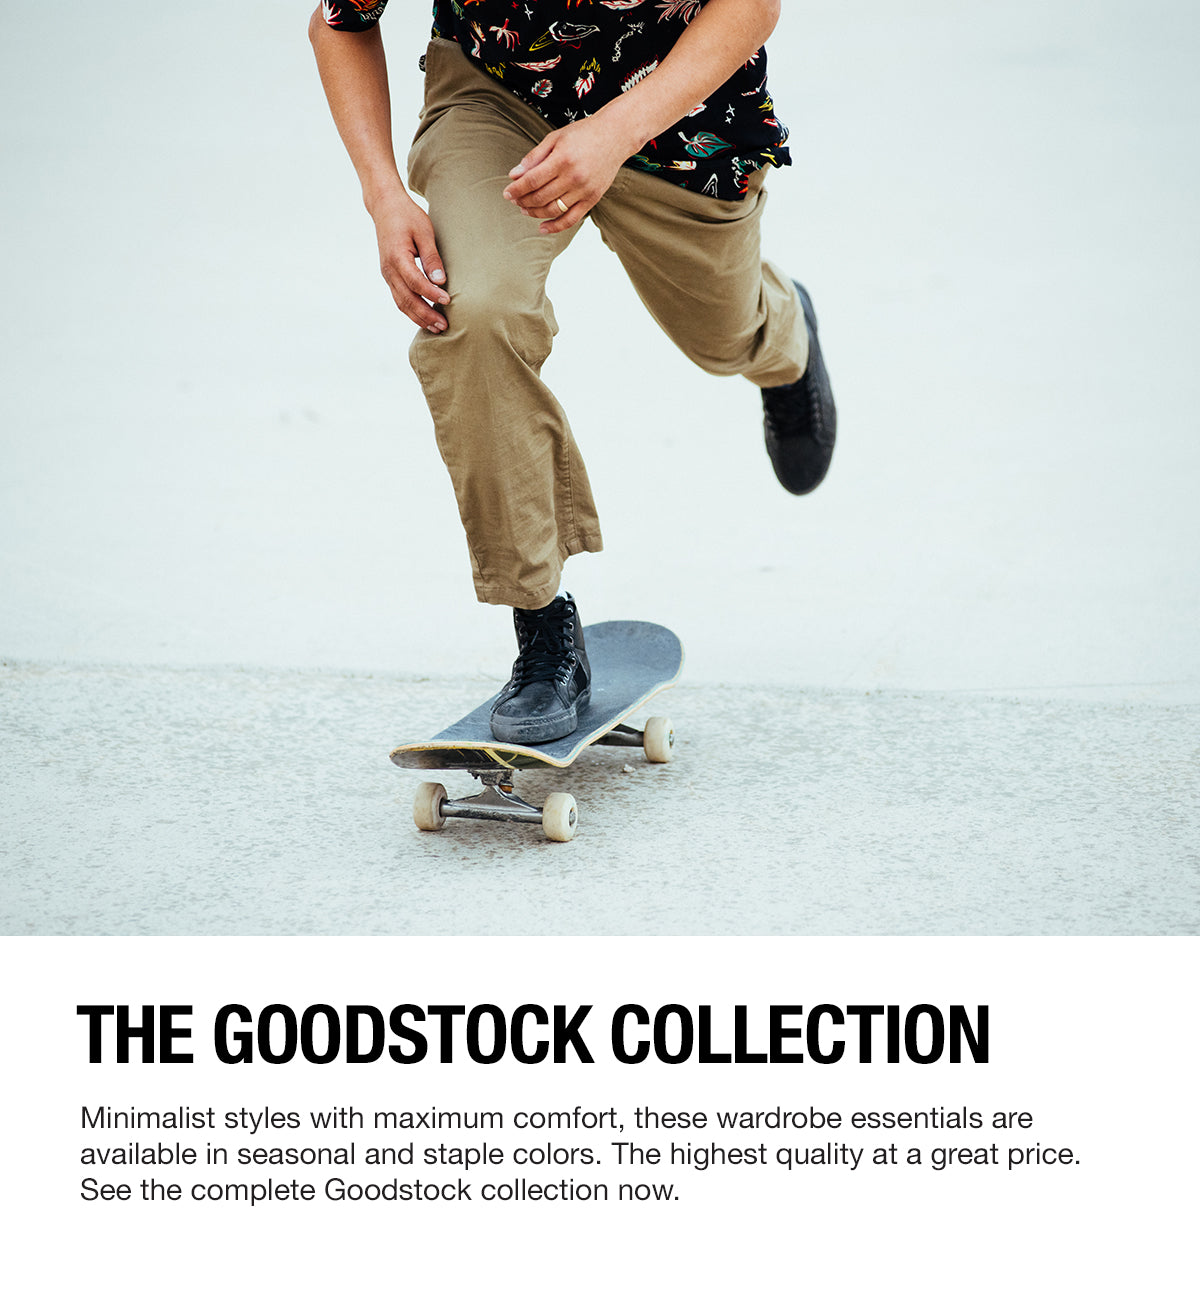 The goodstock collection